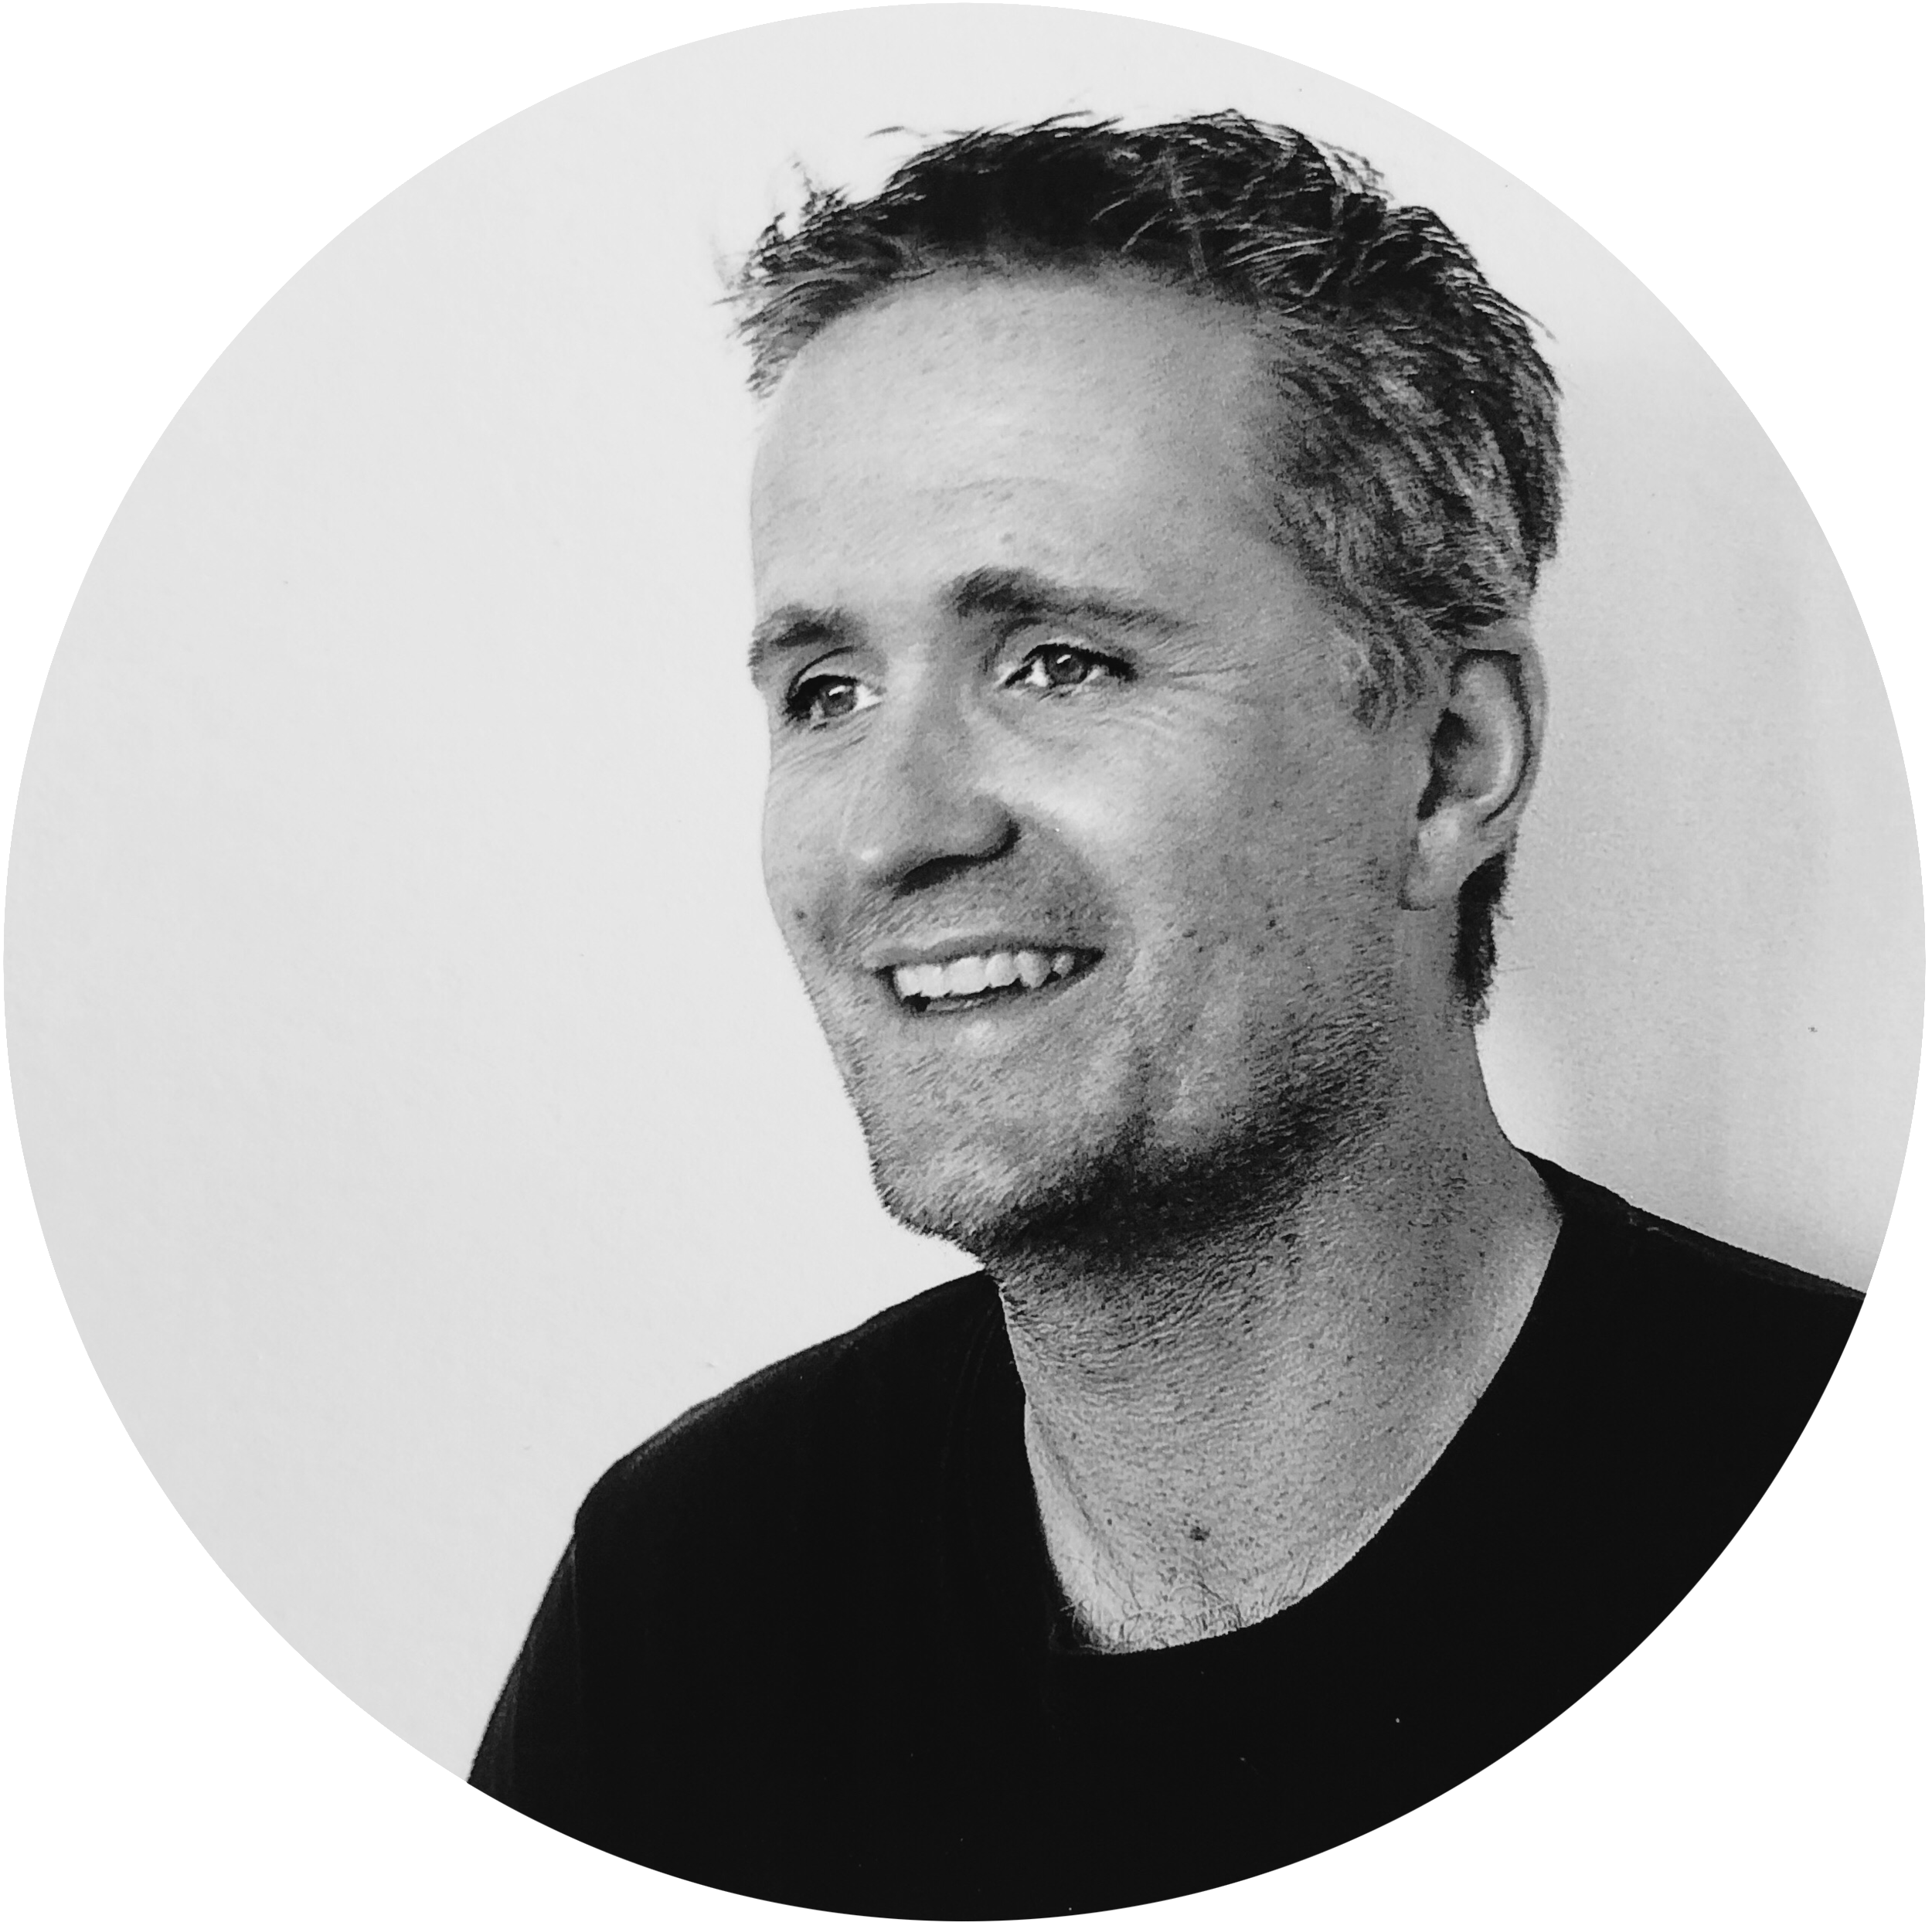 Neil Williams - Neil Williams is the Founder and Co-Director of Designed Social and a pioneer of successful Instagram and Facebook marketing for architecture, interiors & design consumers.